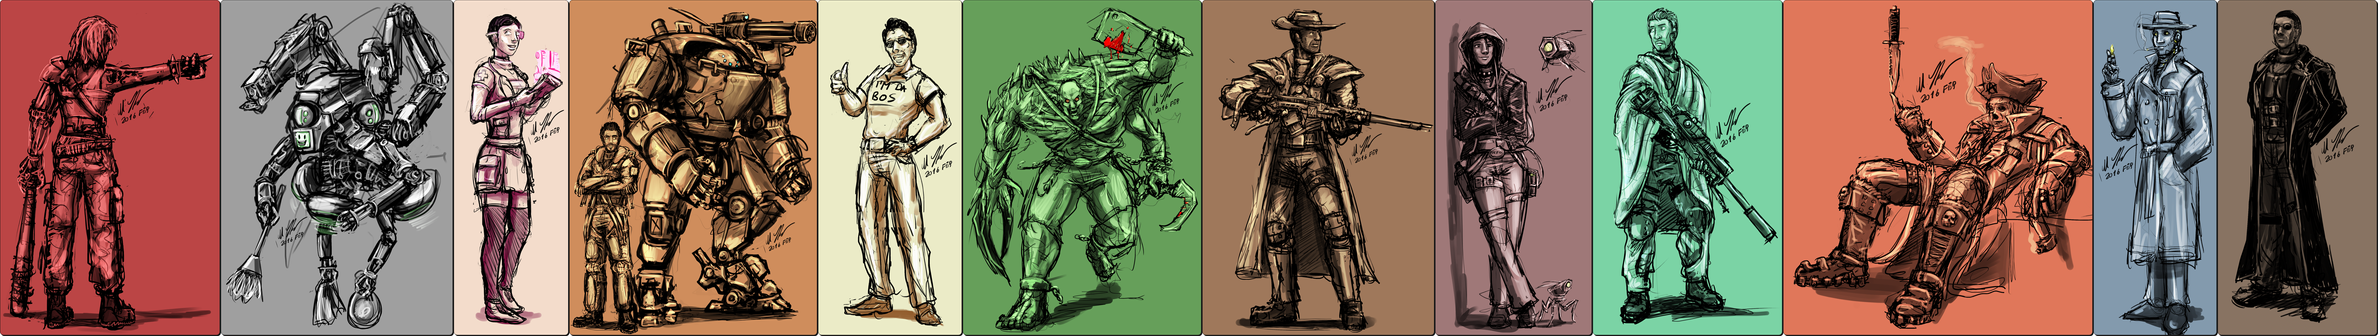 Fallout 4 Companions redesigne by tyrantwache